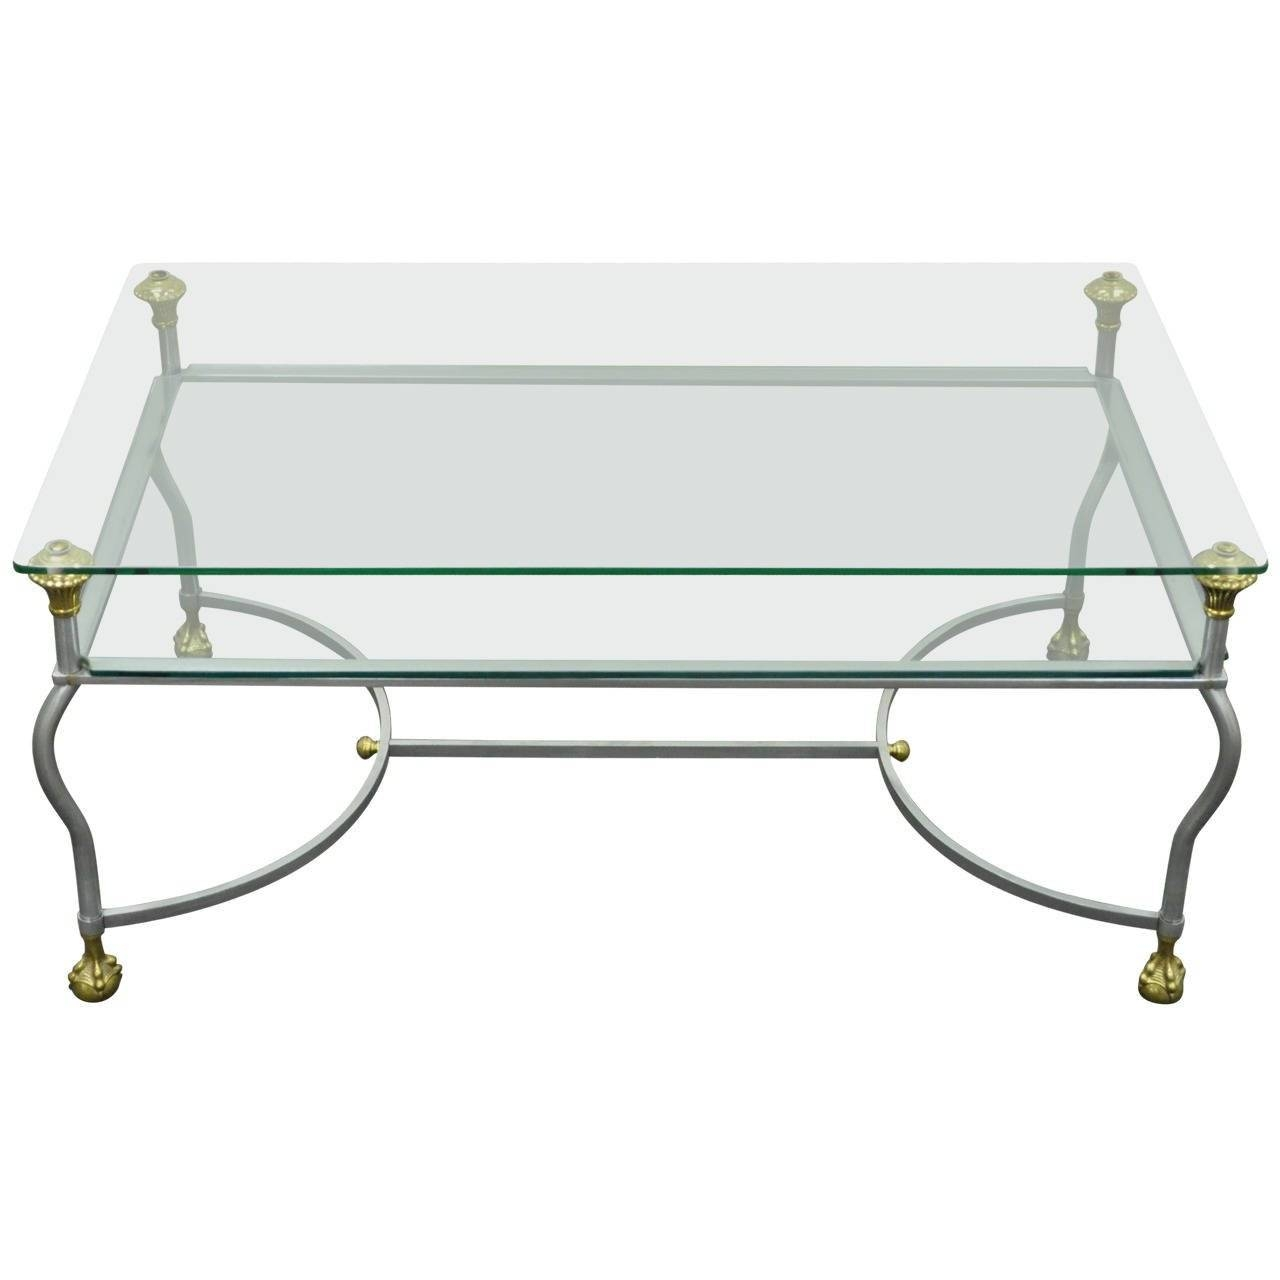 Rare Brass, Brushed Steel, And Glass Claw Foot Coffee Table After intended for Steel and Glass Coffee Tables (Image 23 of 30)